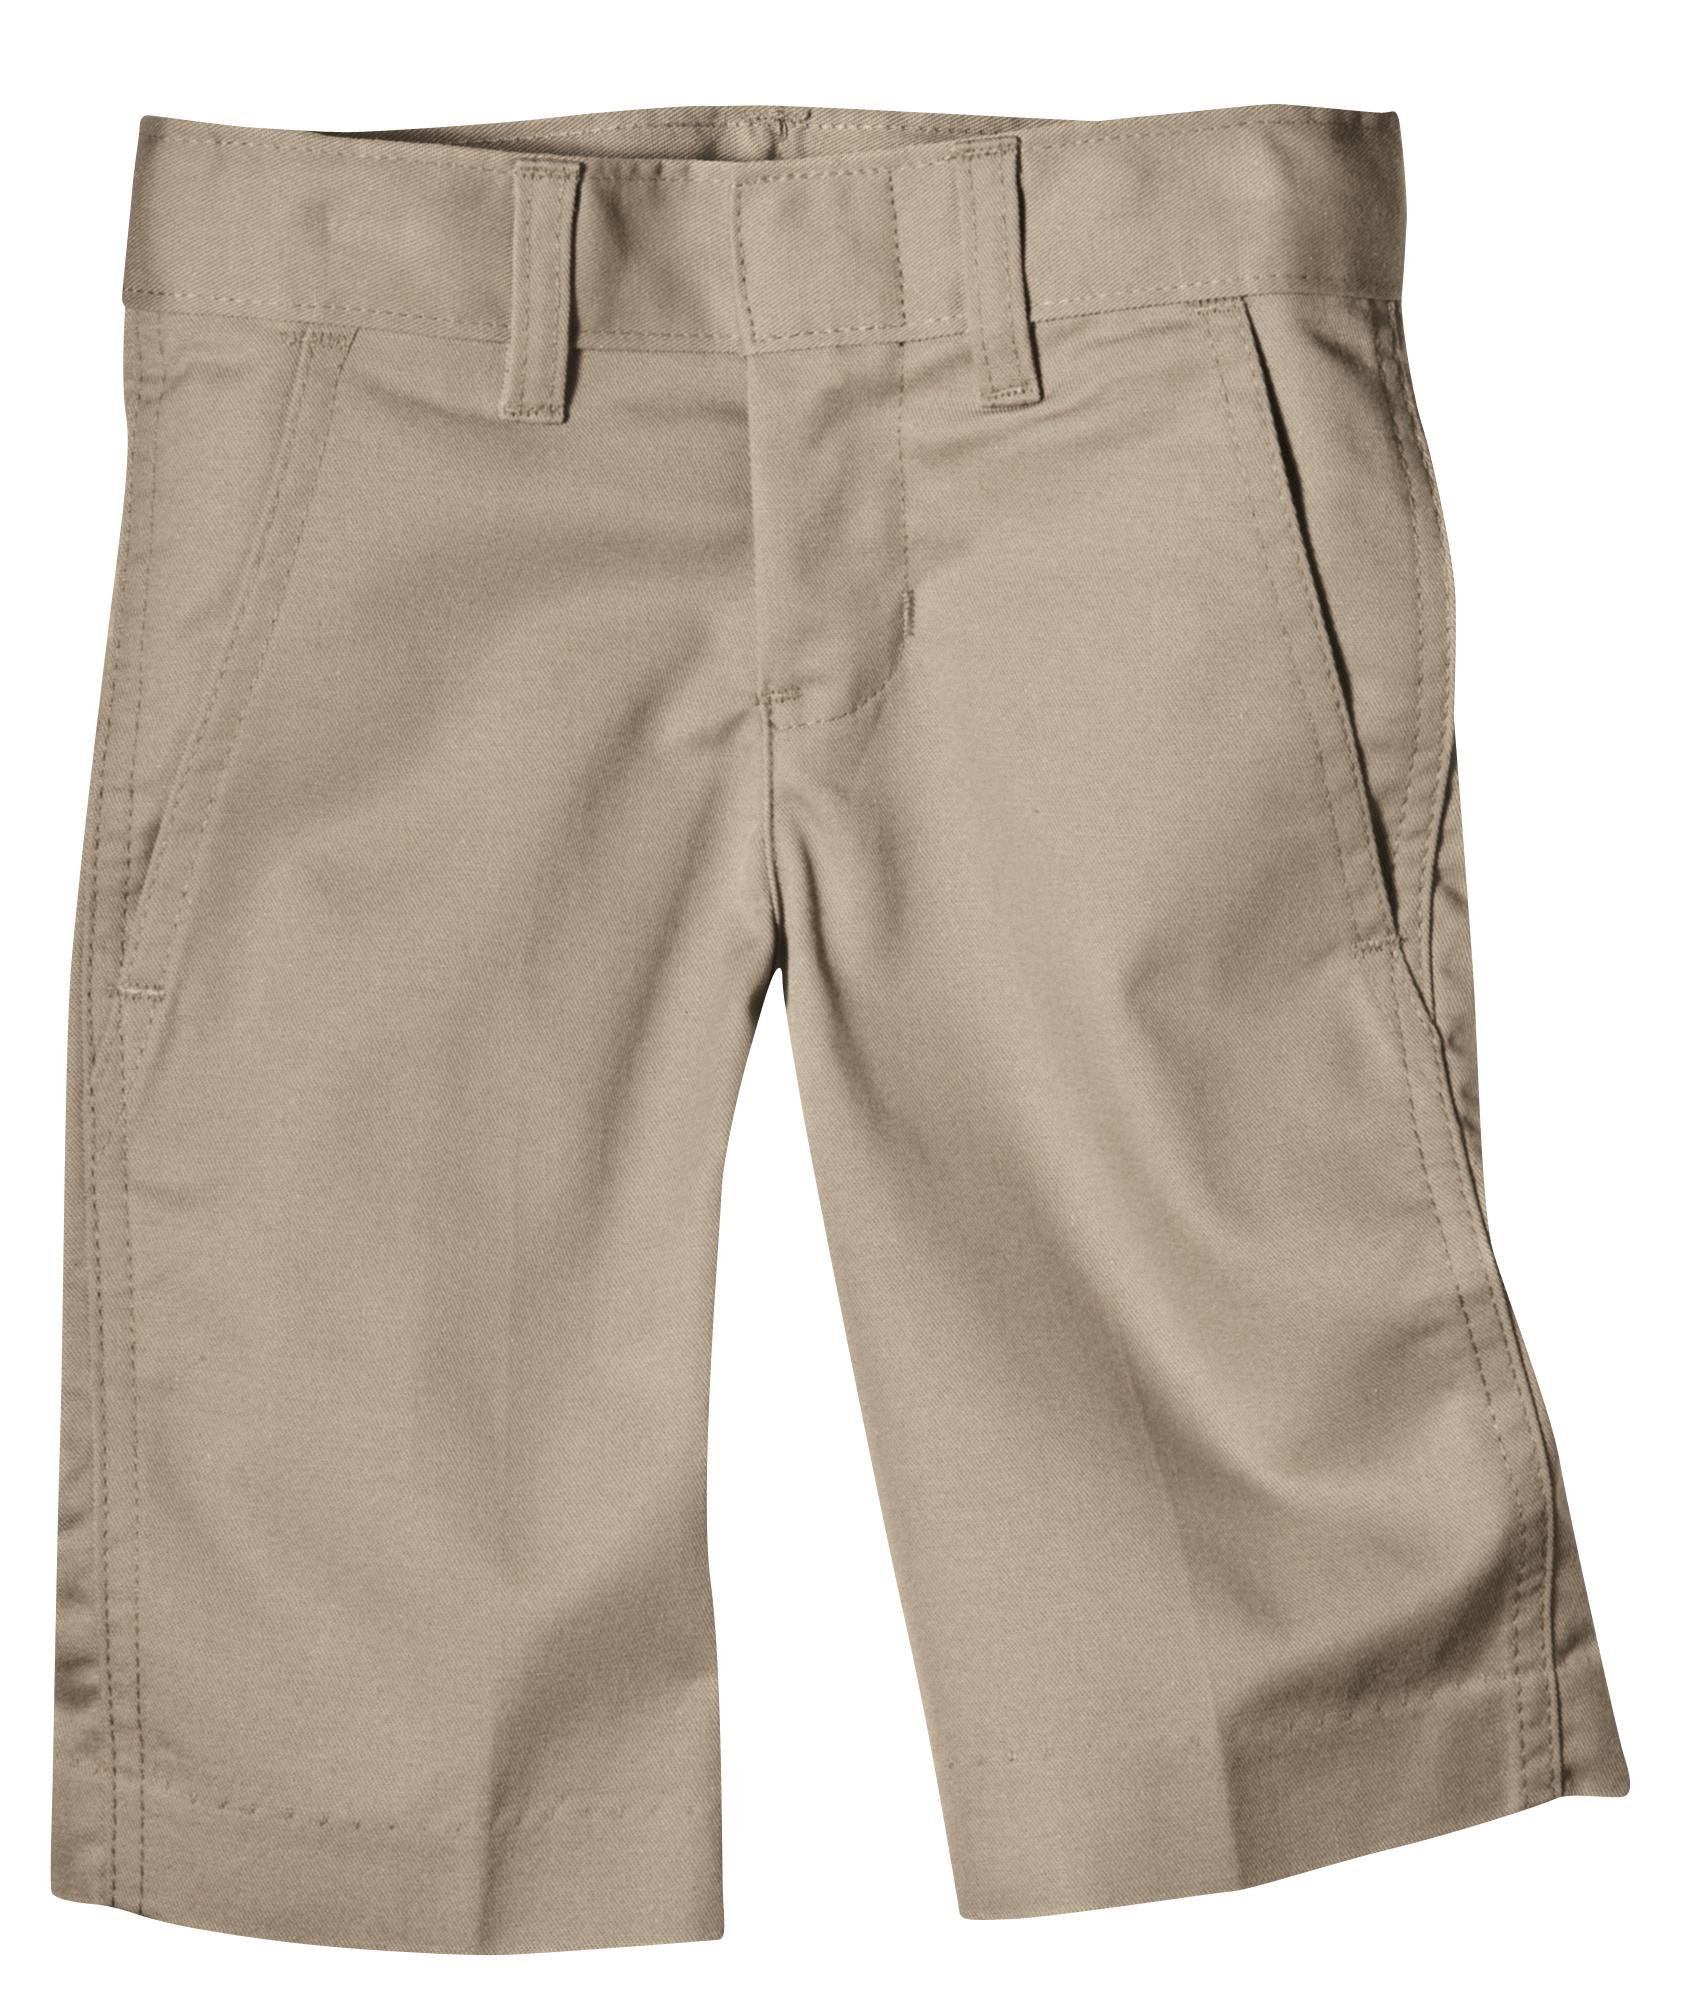 Dickies Big Boys' Flex Waist Flat Front School Uniform Short, Khaki, 14 Regular